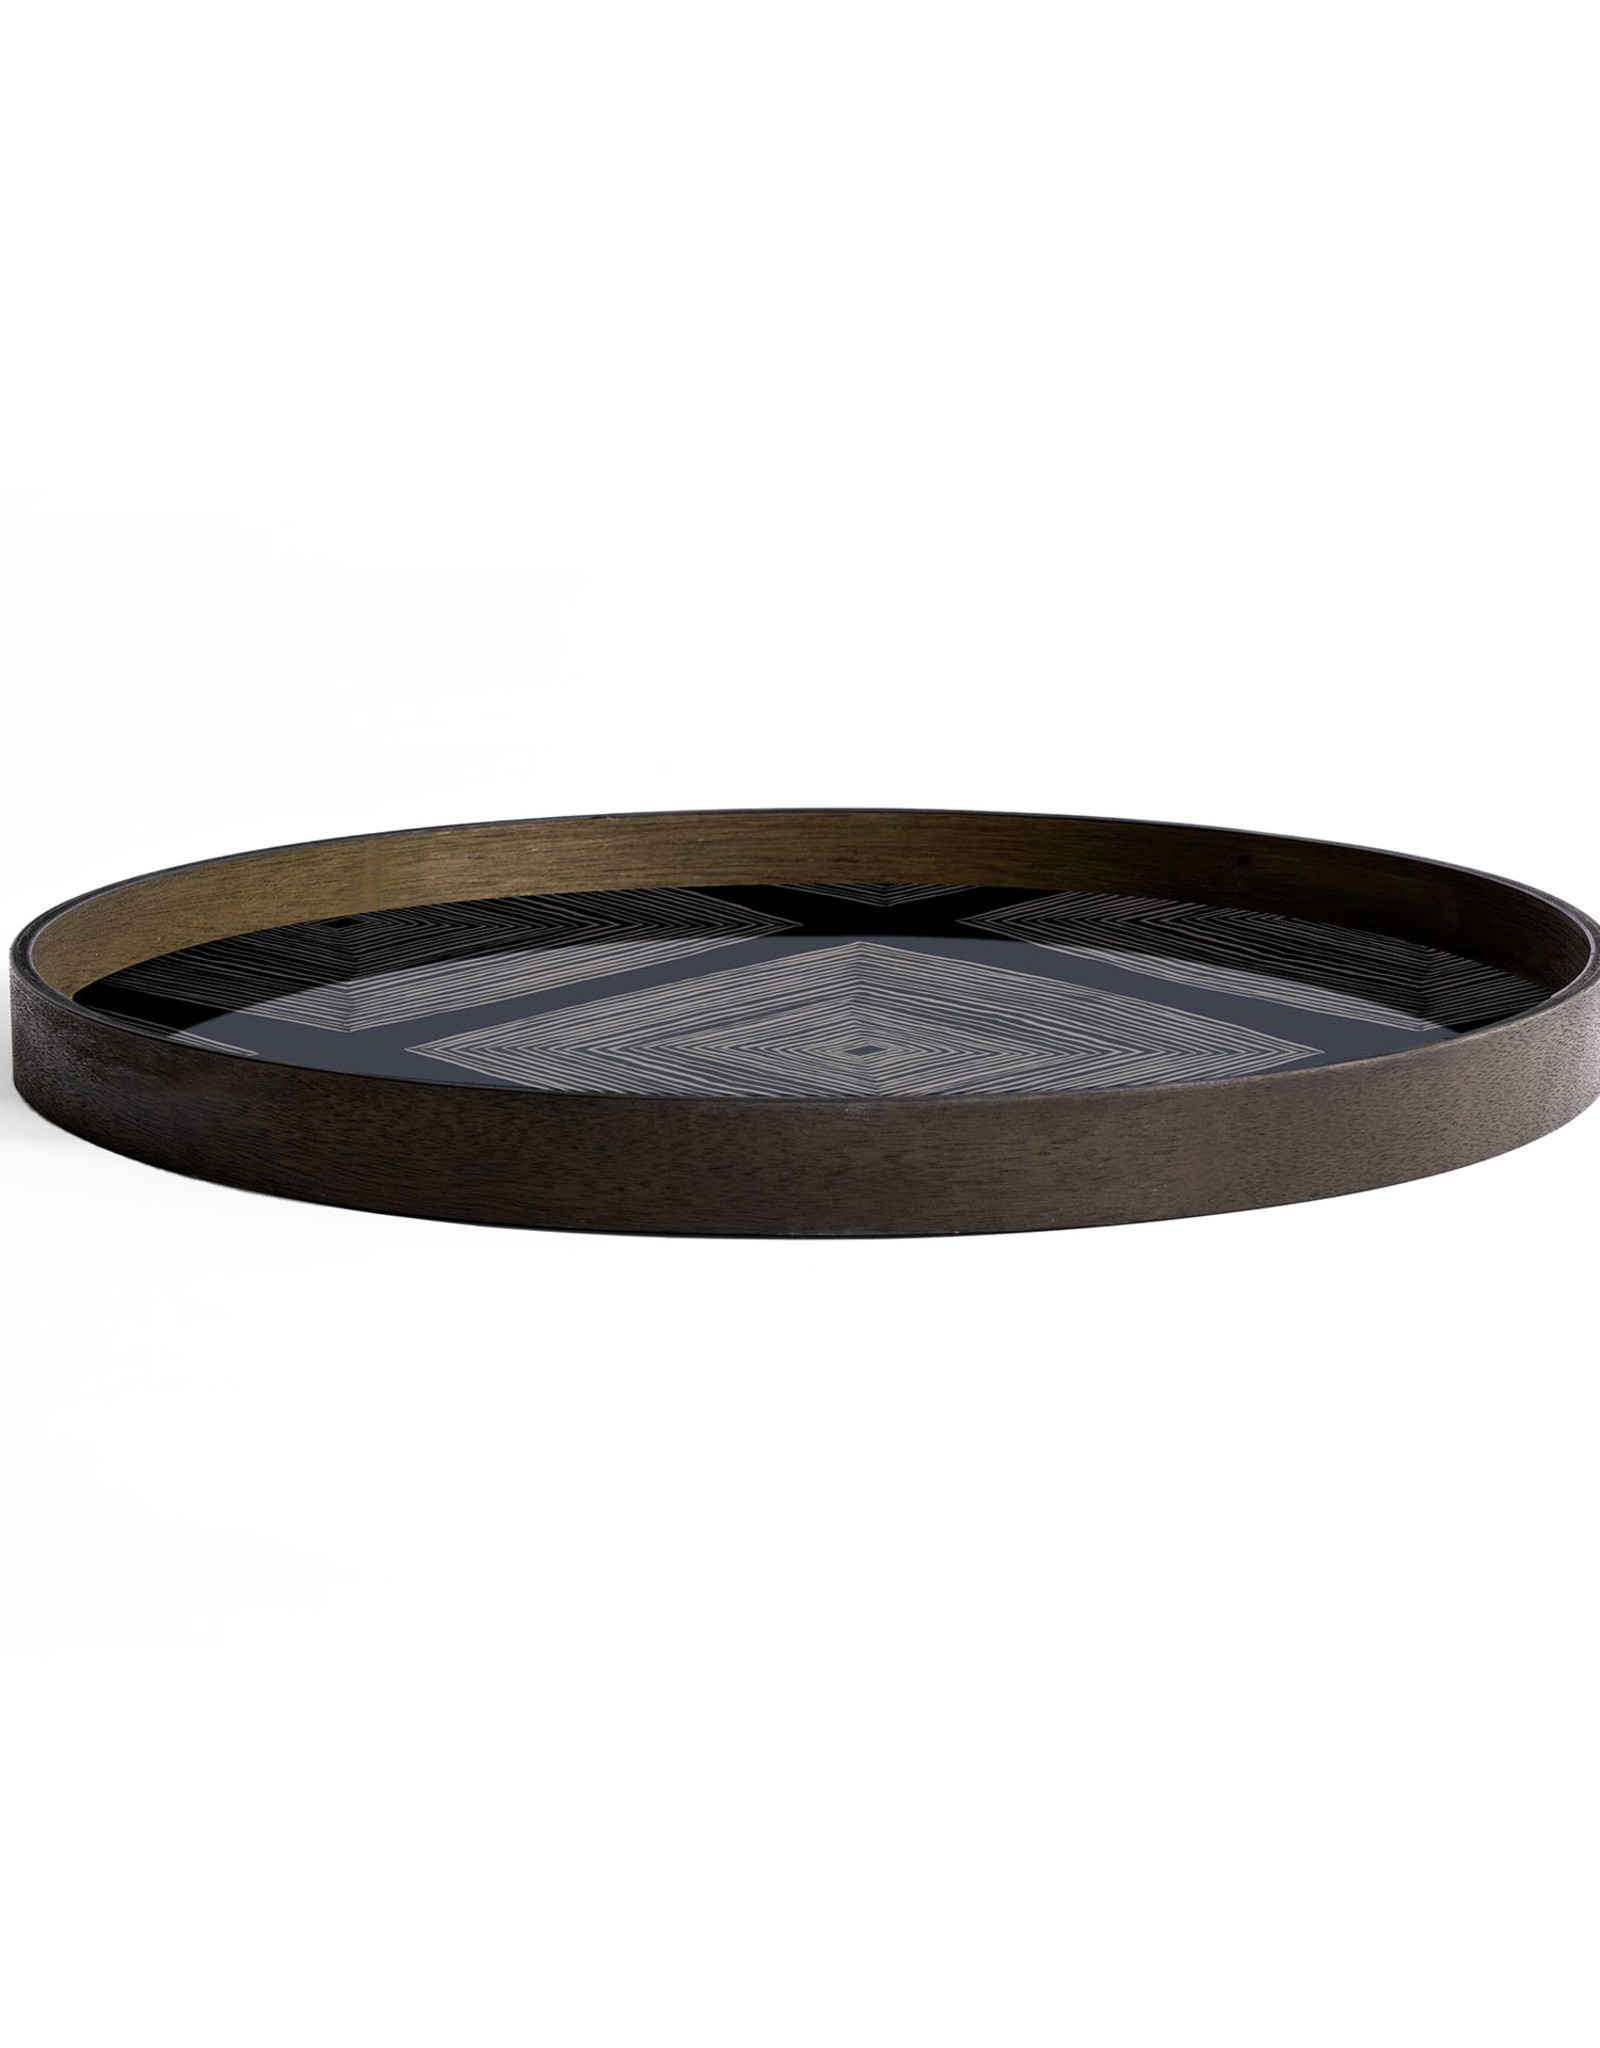 Ink Linear Squares glass tray - round - L 24 x 24 x 2